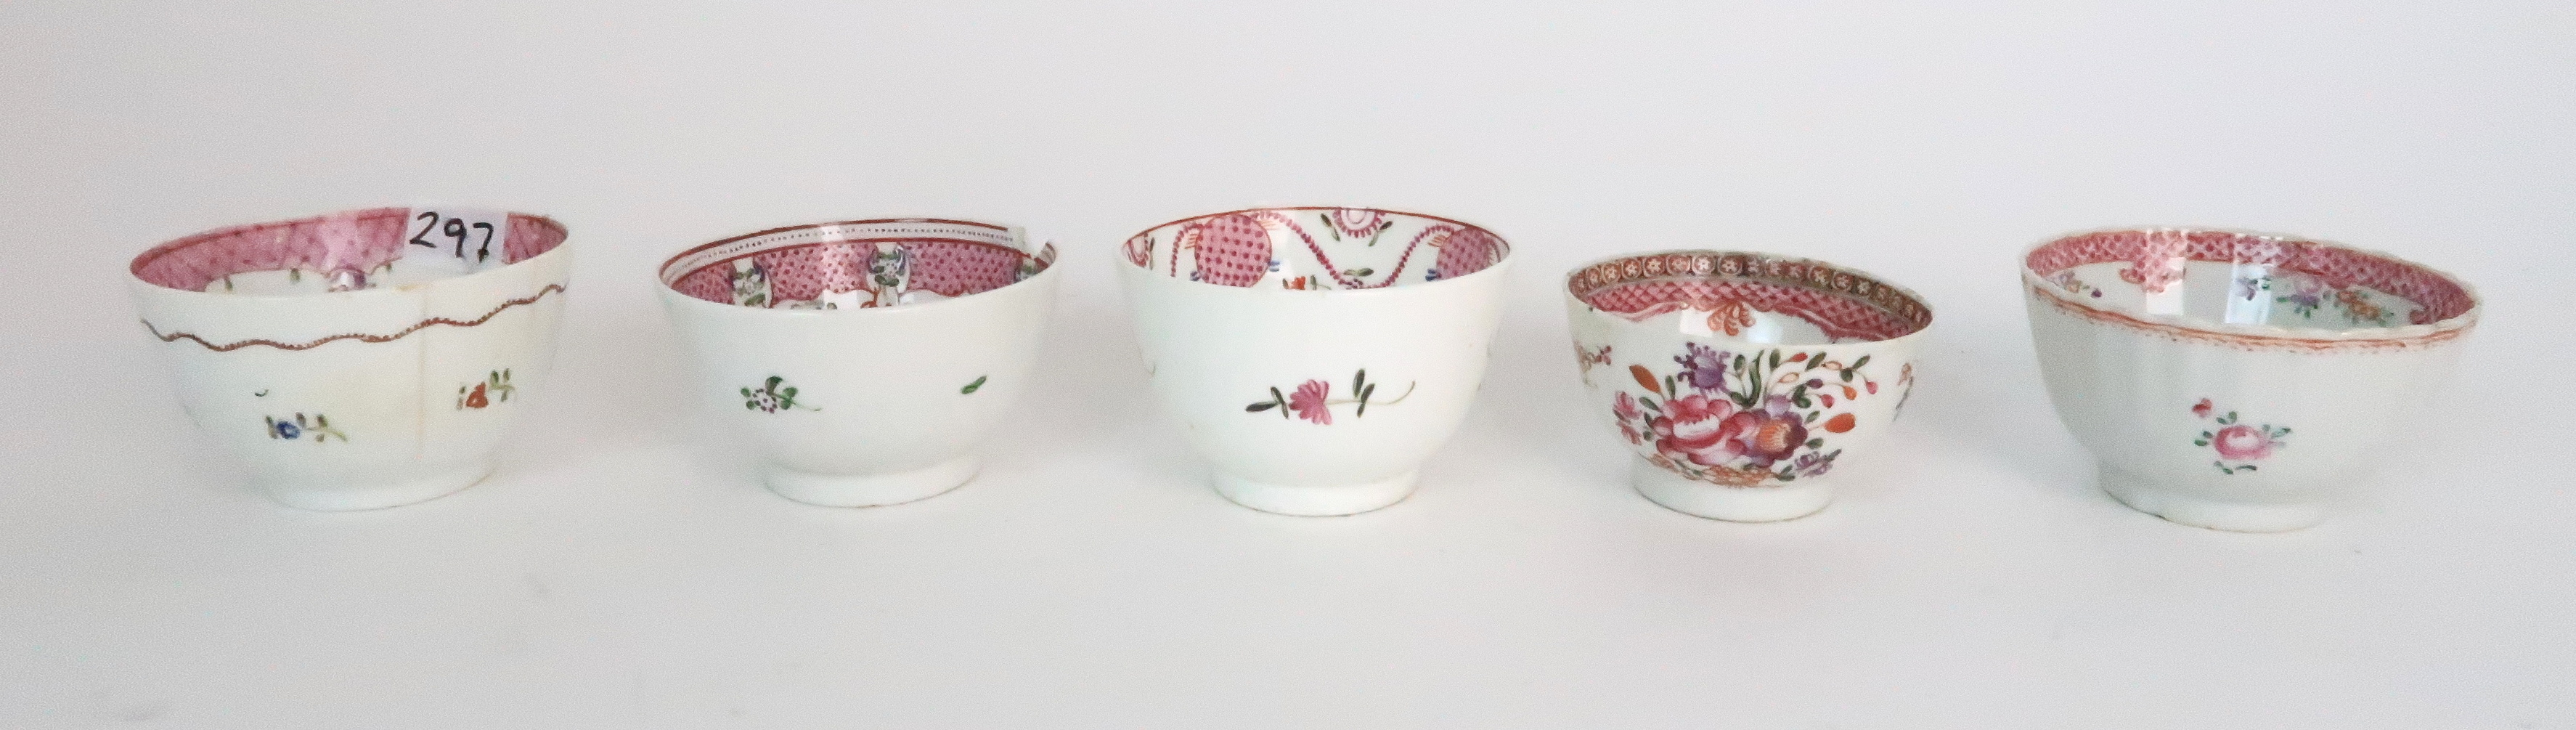 A COLLECTION OF TEA BOWLS AND SAUCERS each with pink scale and floral decoration including New Hall; - Image 7 of 12